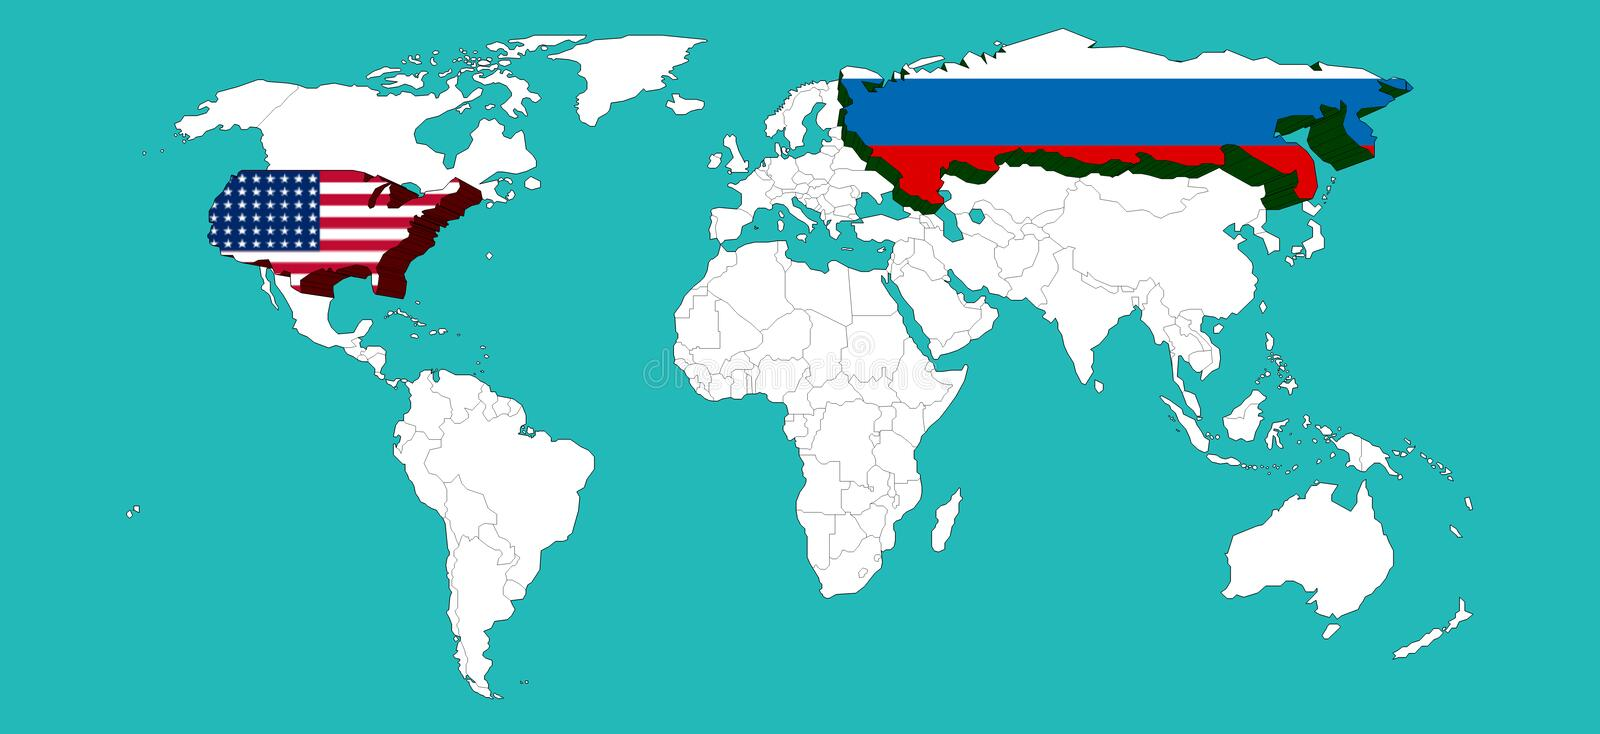 World map decorated usa by usa flage and russia by russia flage download world map decorated usa by usa flage and russia by russia flage elements of gumiabroncs Image collections